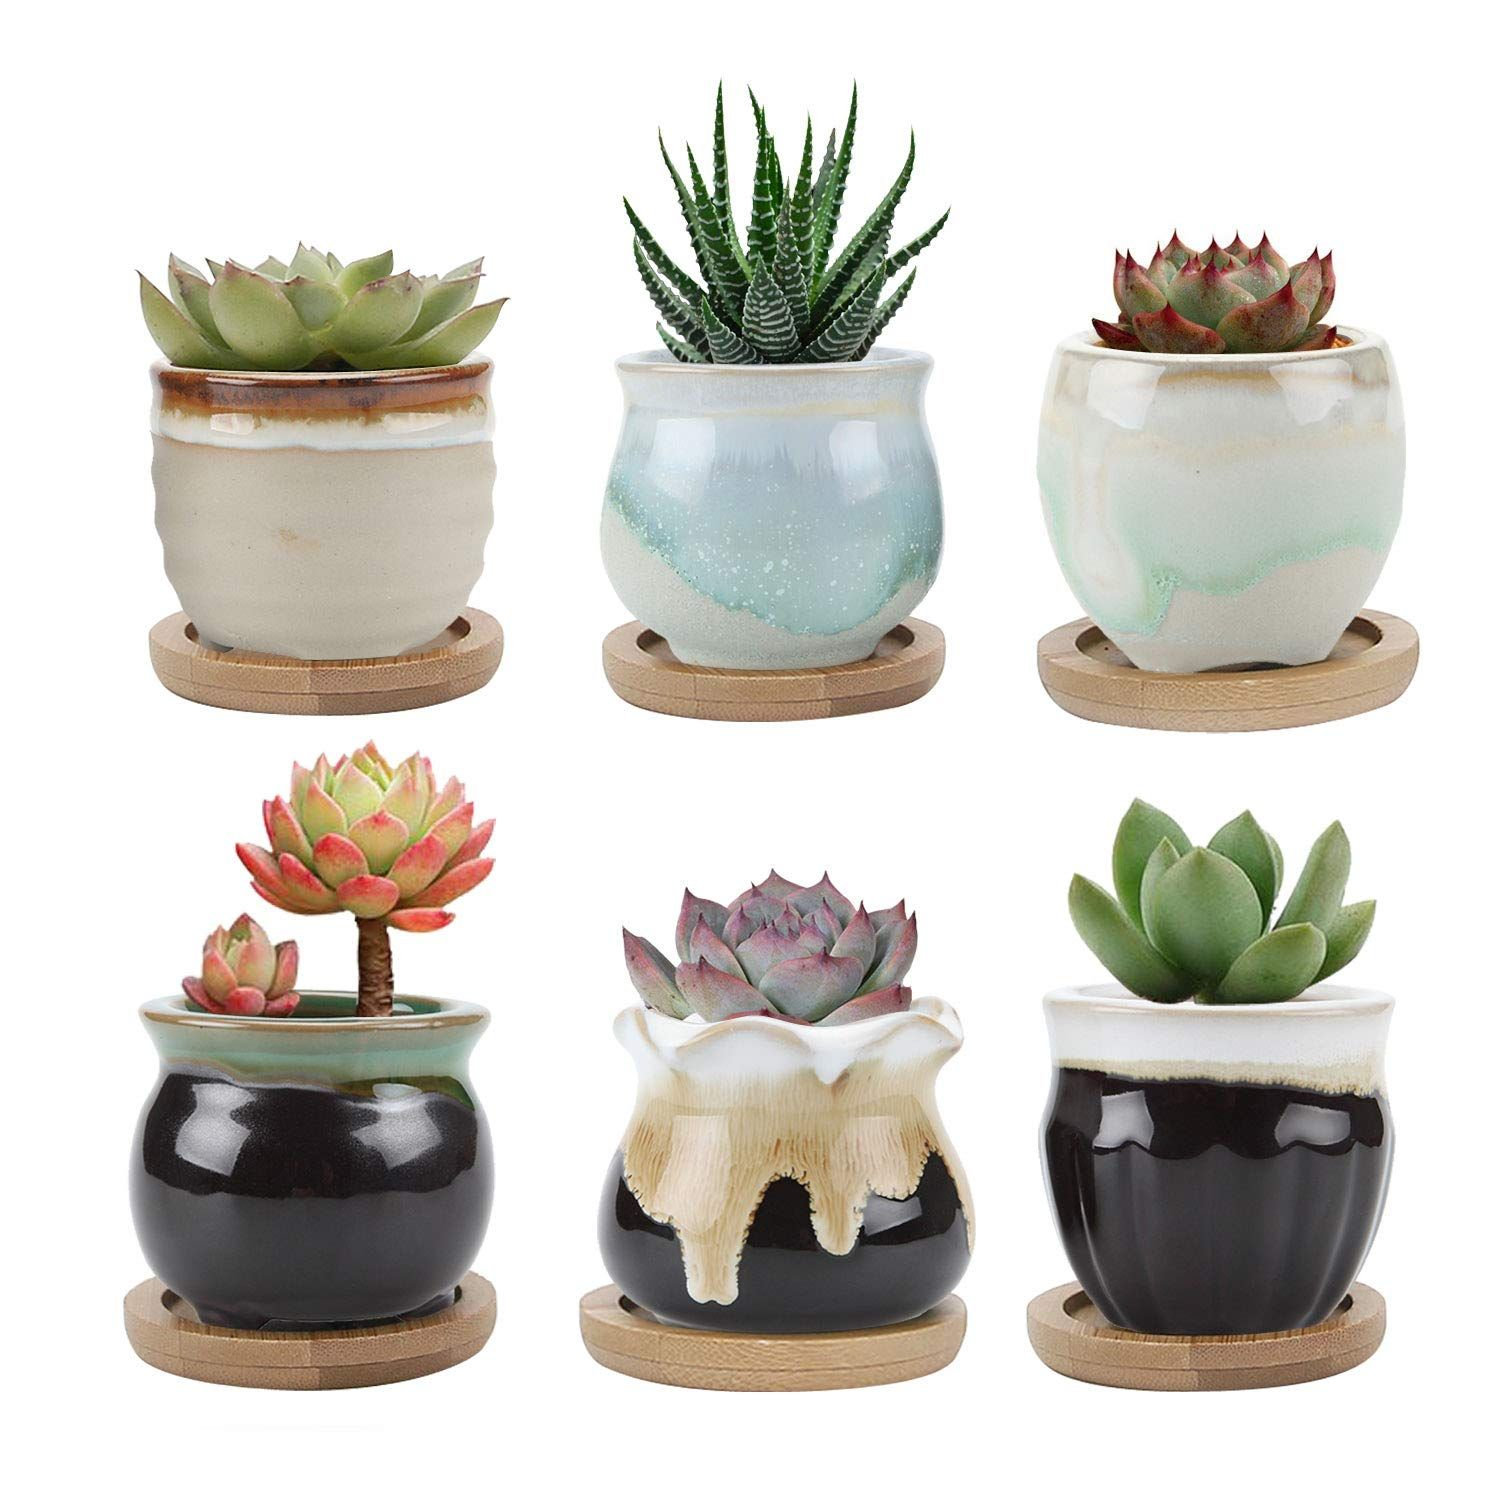 T4U 4 Inch Ceramic Wall Planter Pot Set of 4, Black Round Wall Mounted Air Plant Cactus Herb Container for Gardening Home and Office Decoration Birthday Wedding Gift